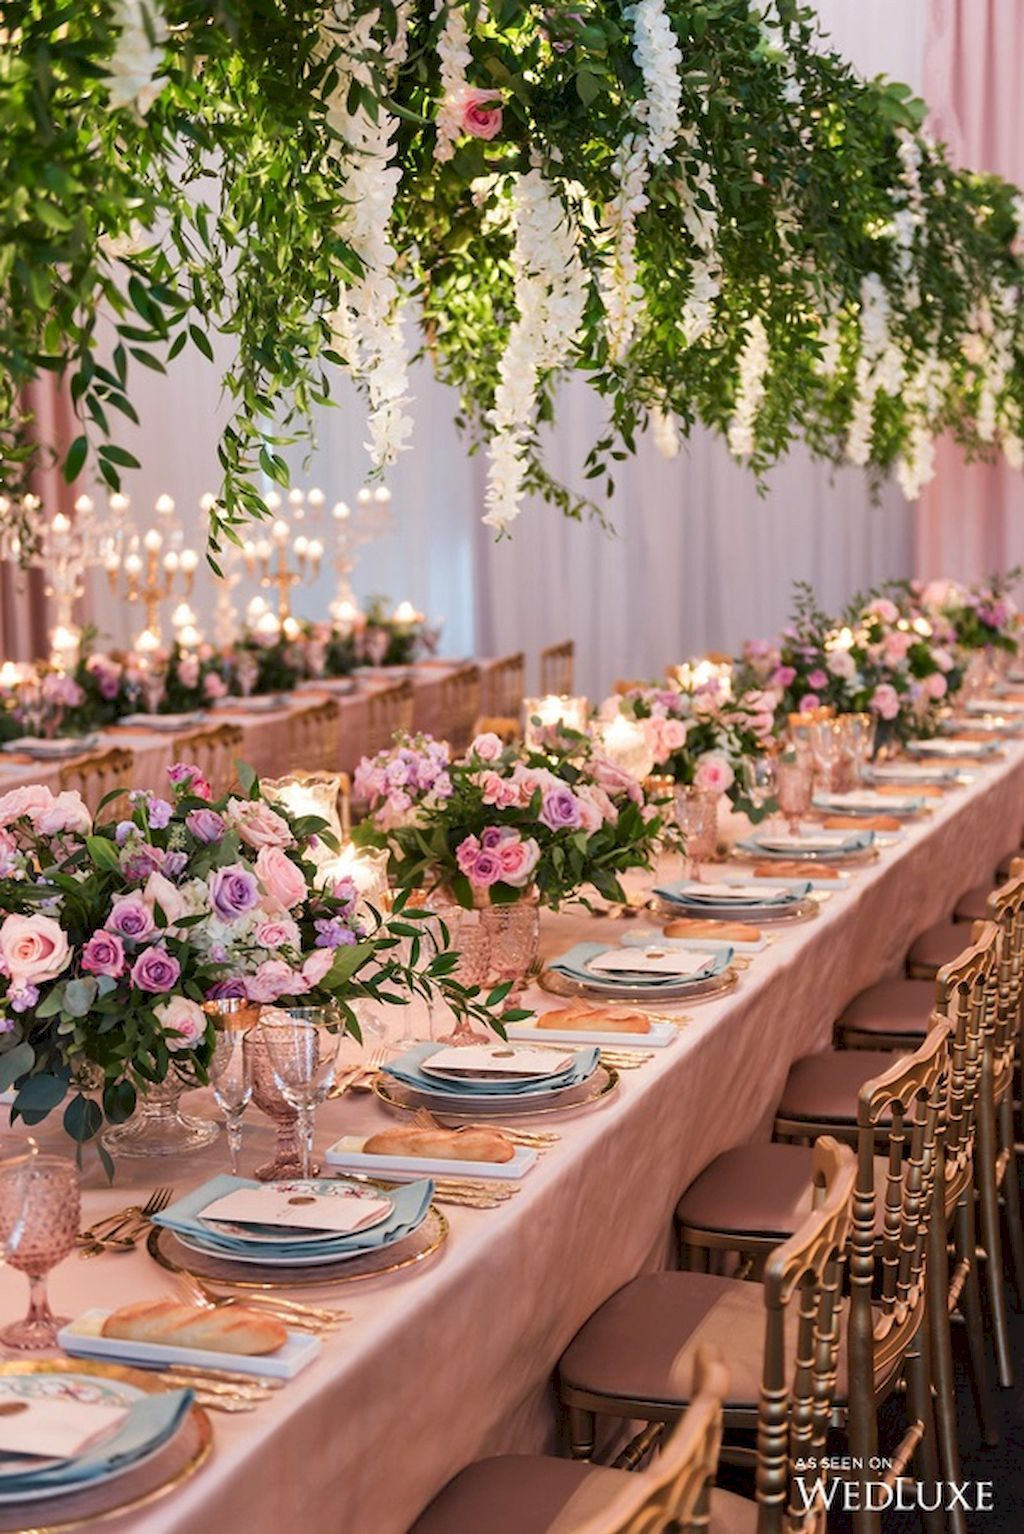 101 Rustic And Romantic Floral Wedding Themes Ideas